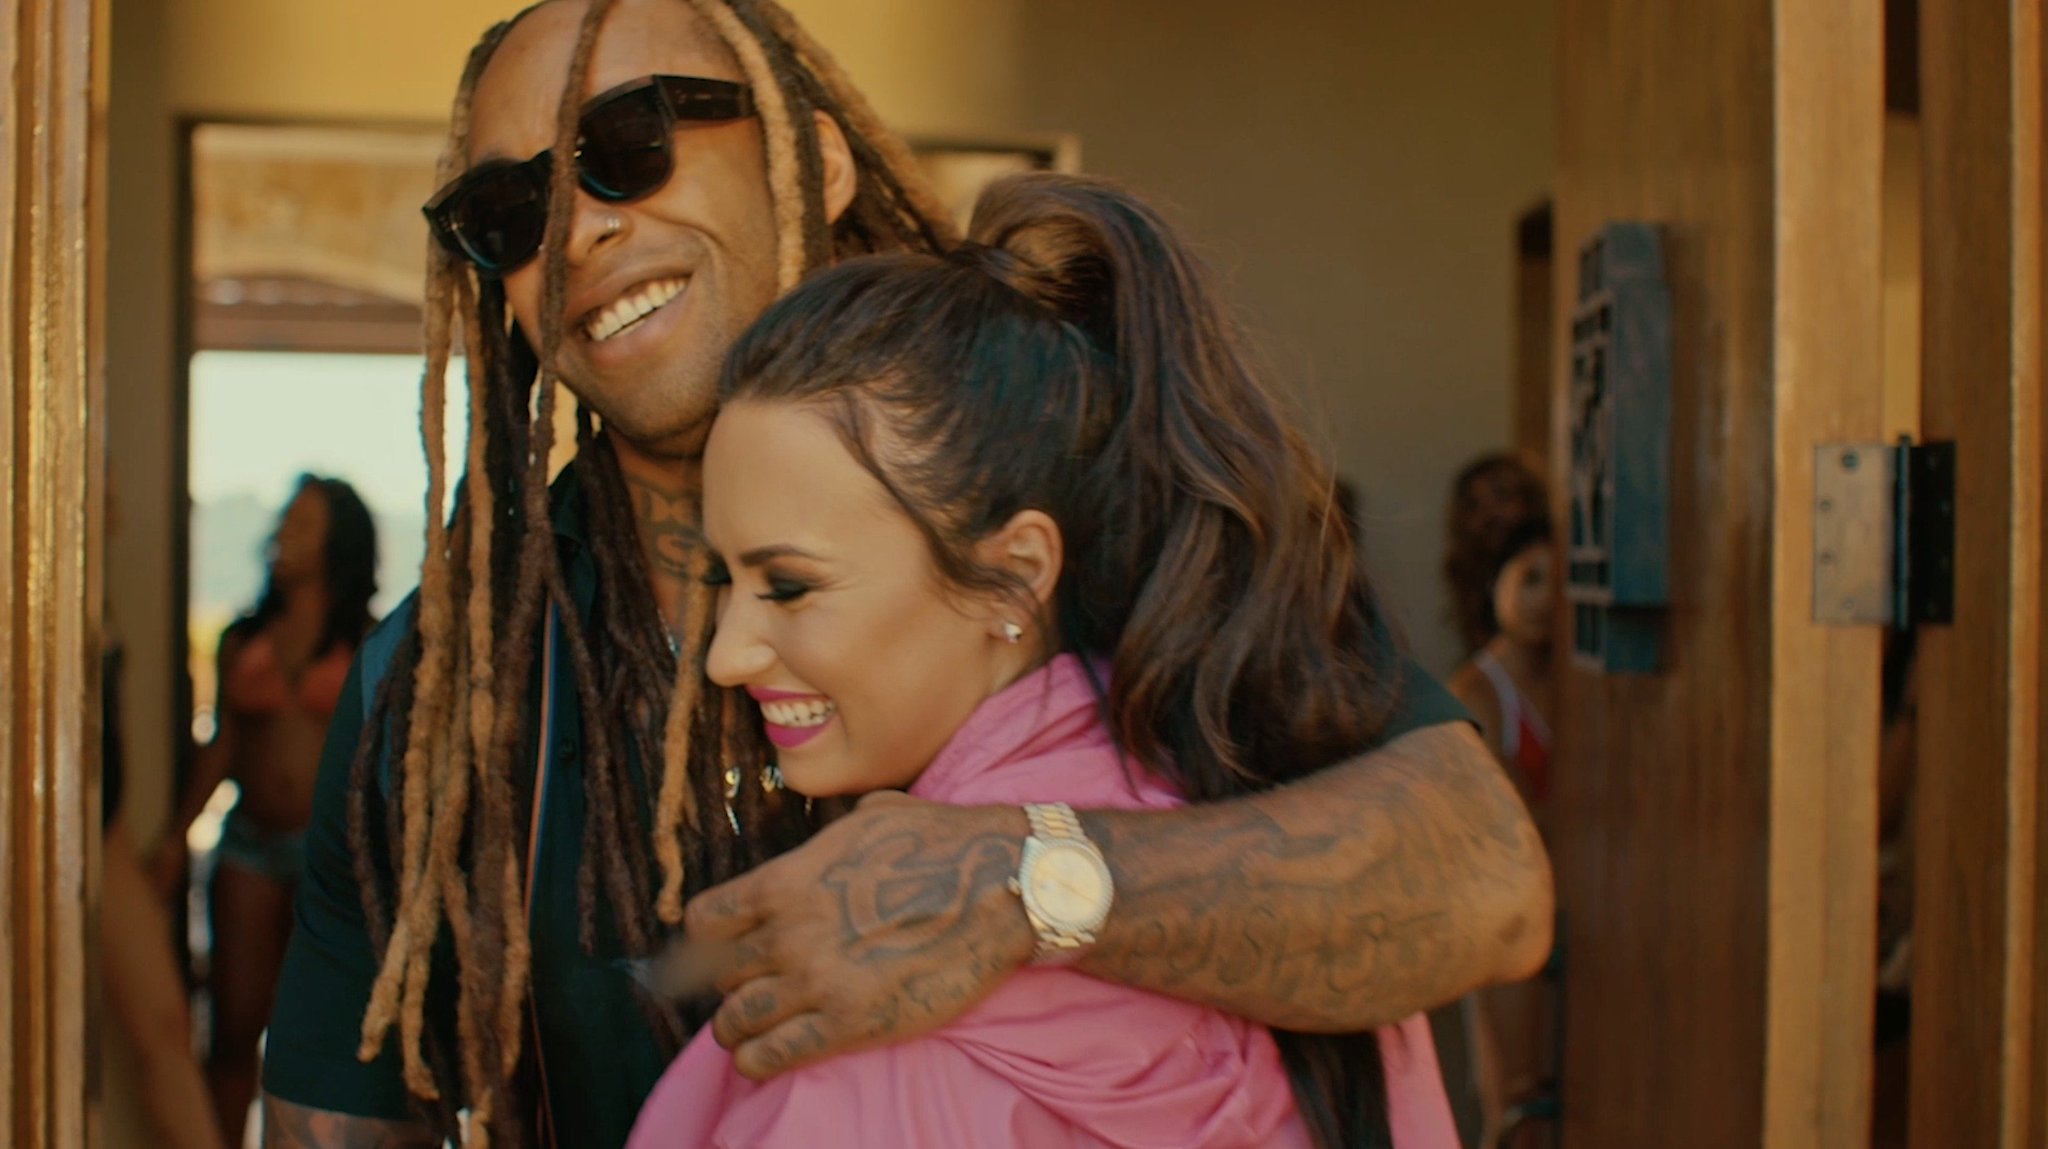 #SomethingNew video is here!! https://t.co/HppWIsU9Hr ������ @wizkhalifa @tydollasign https://t.co/gP1sA7R6qy